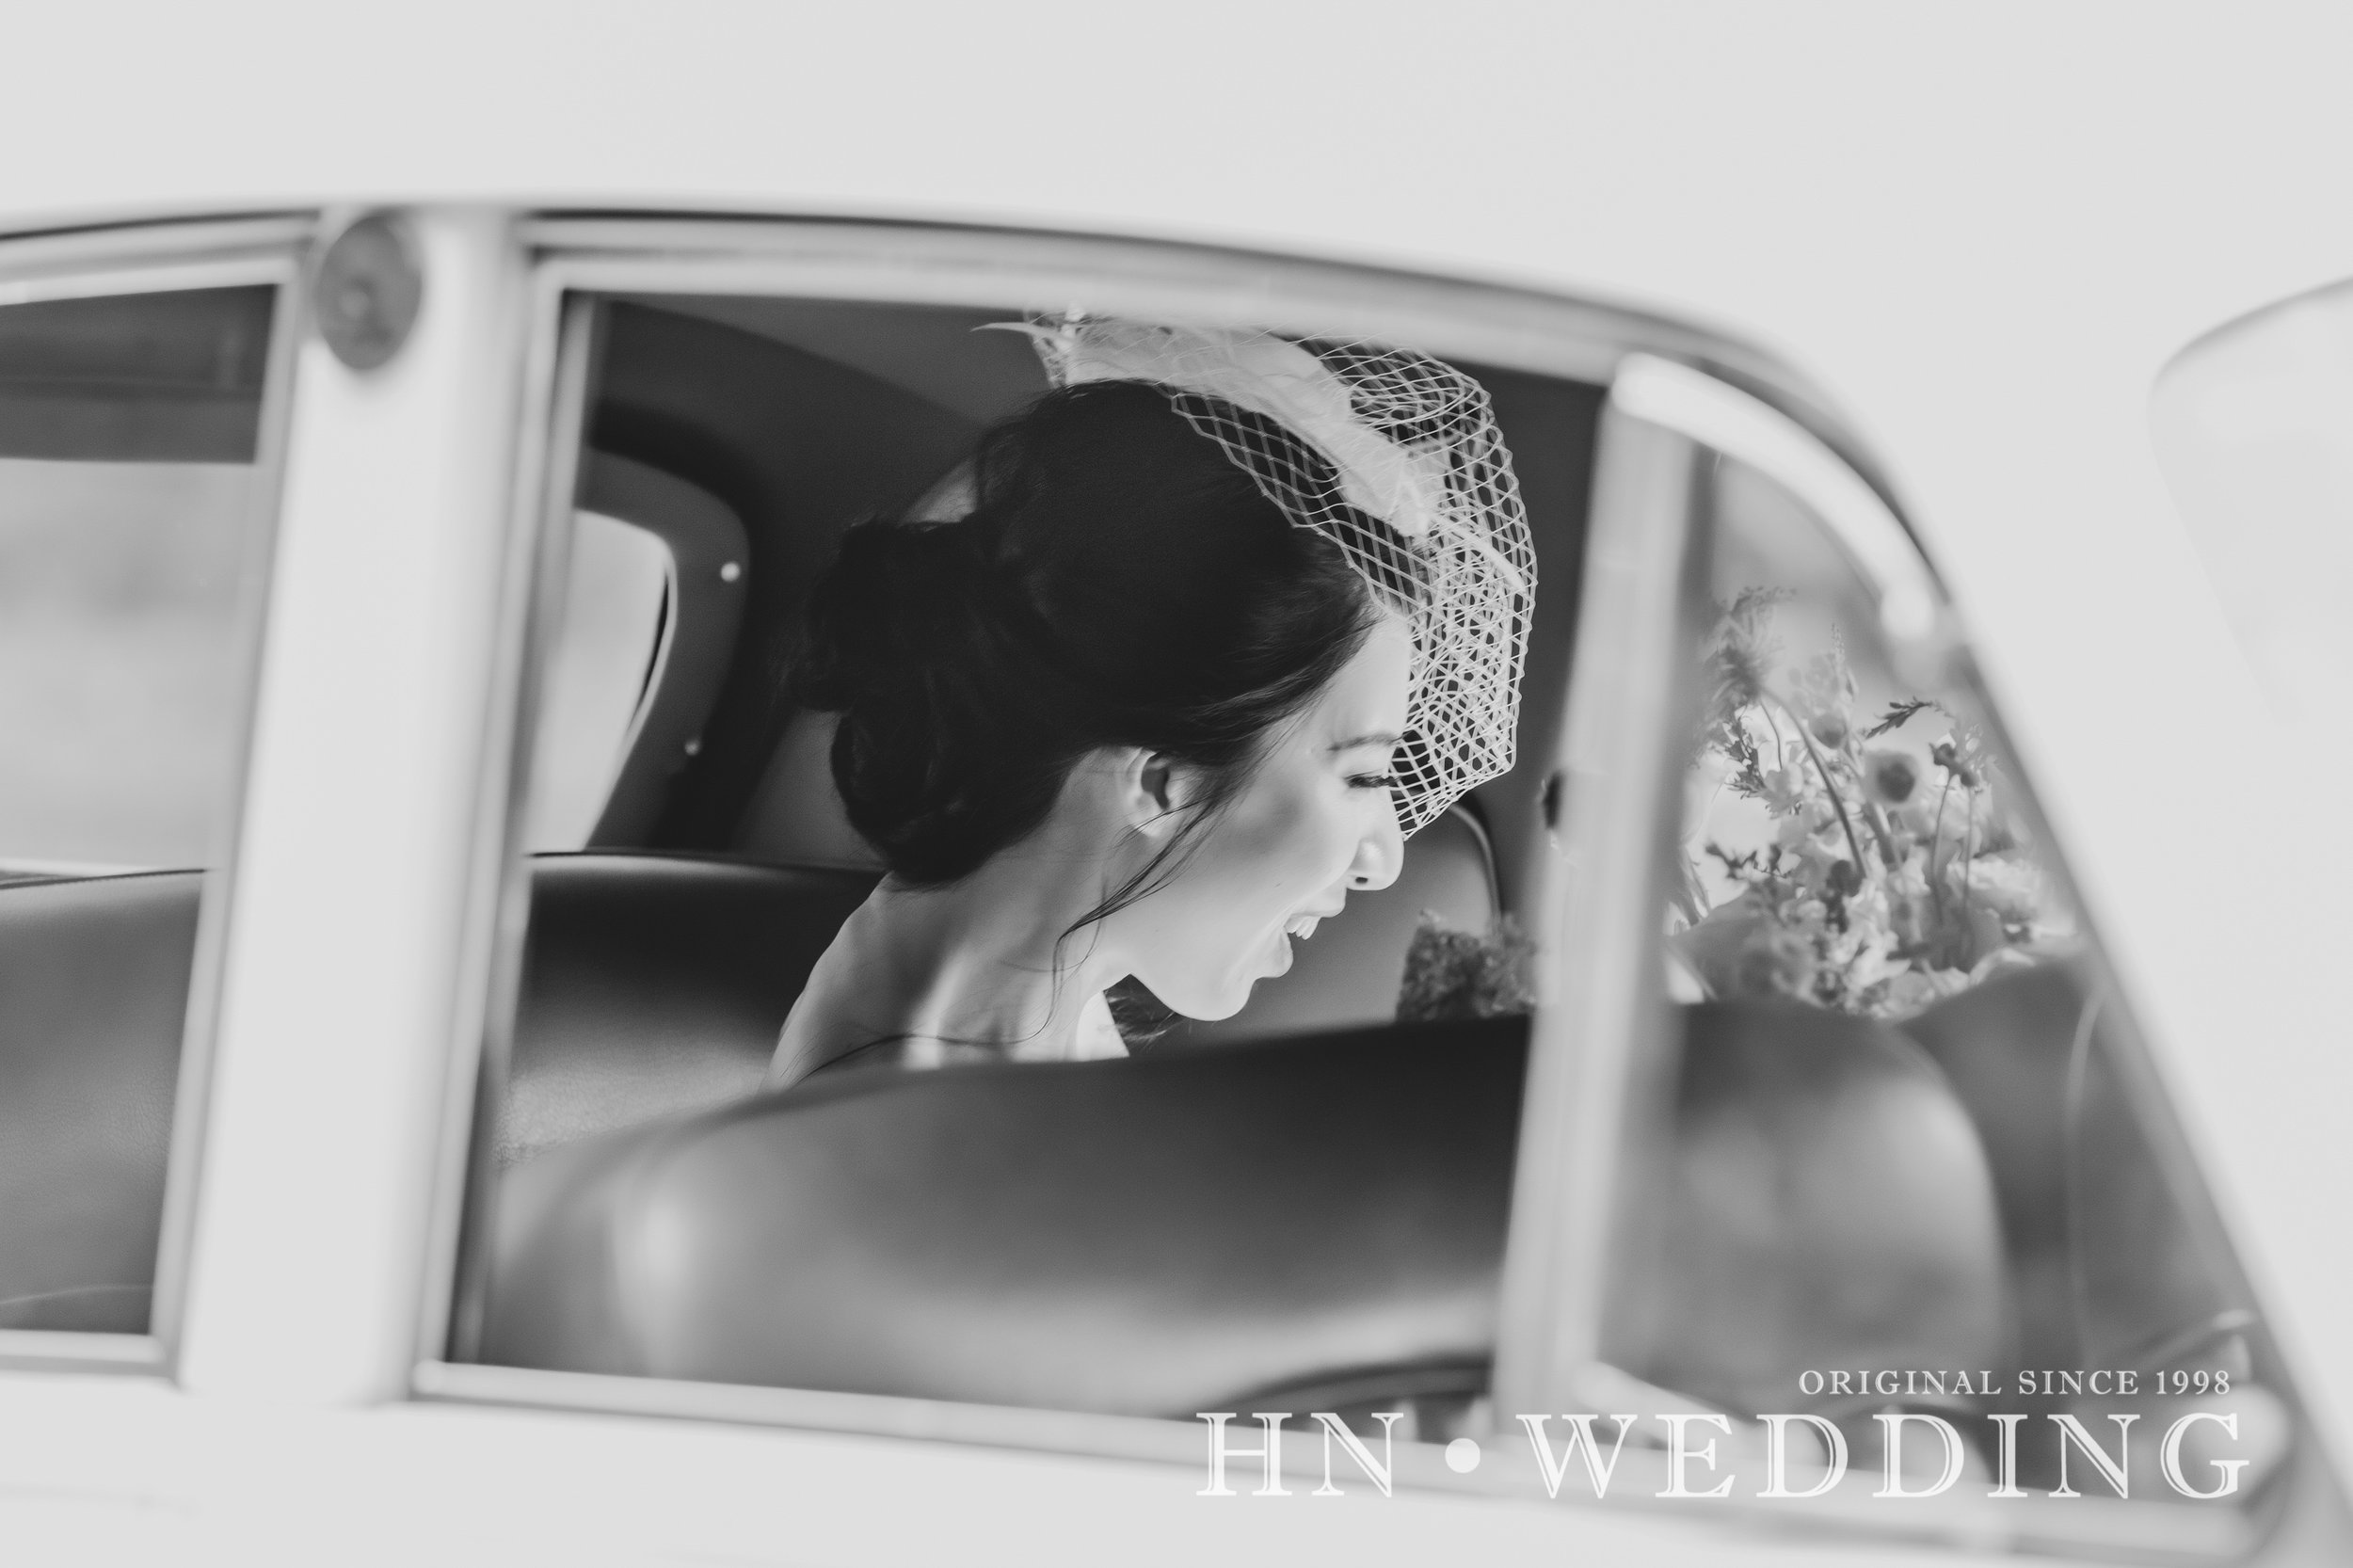 hnweddingweddingday20180830-103.jpg